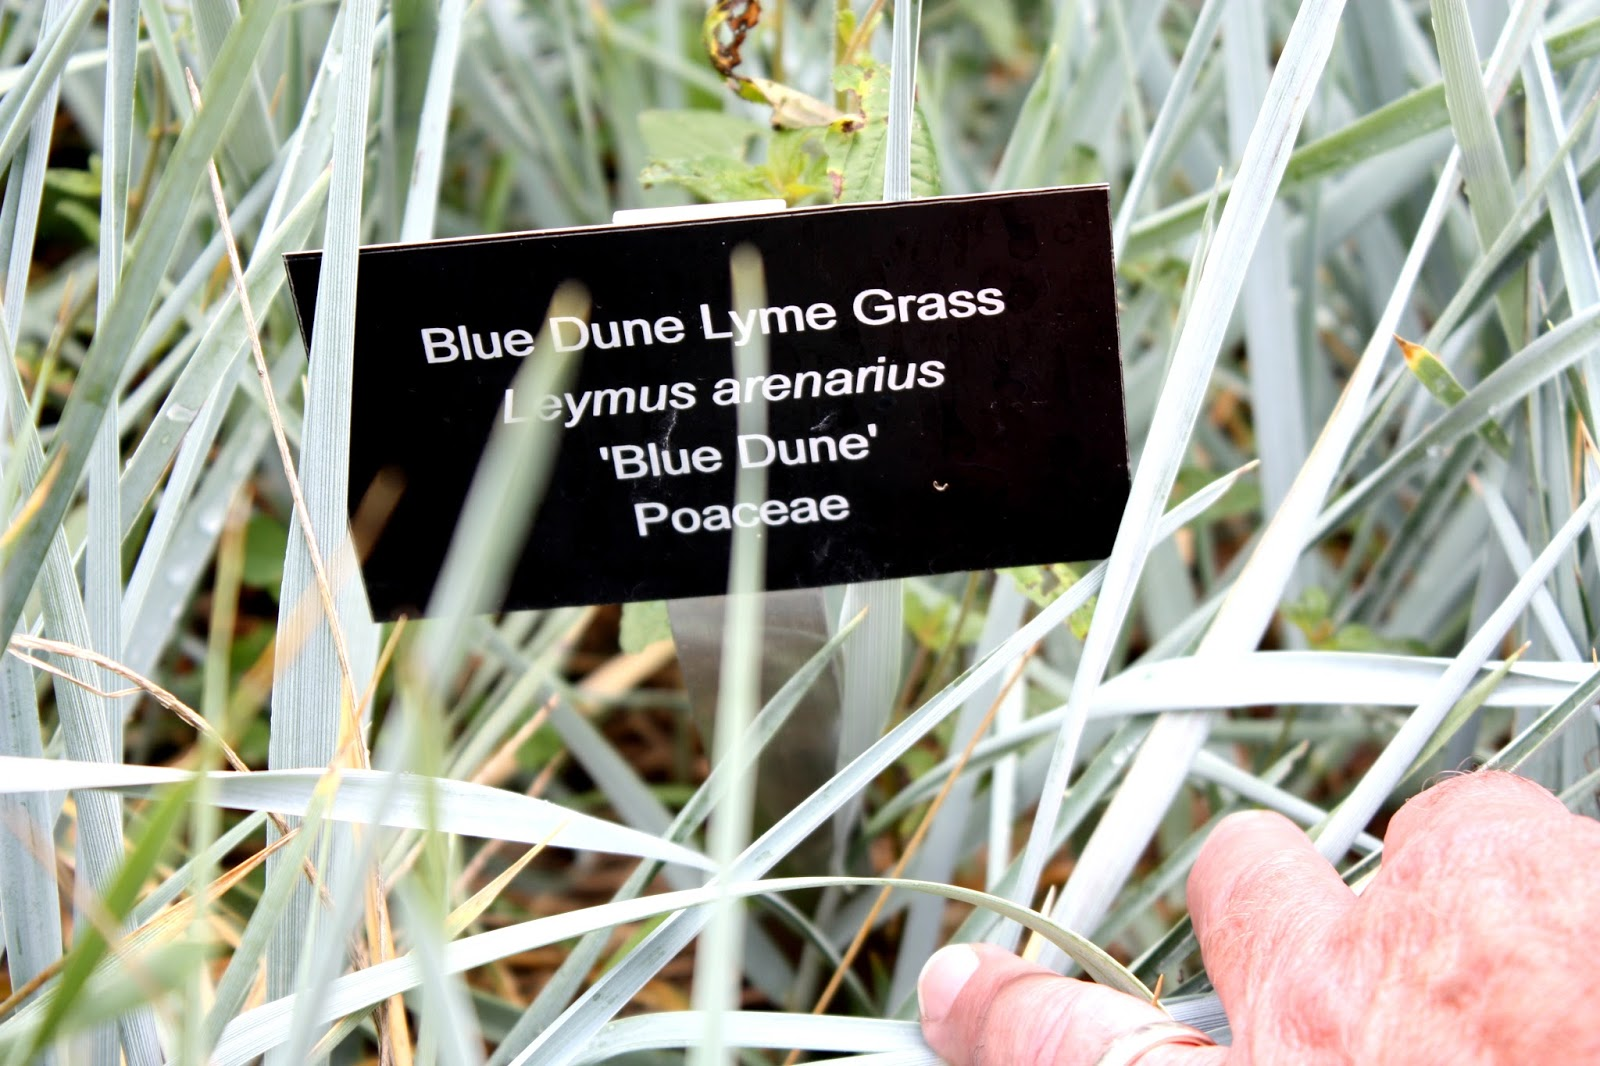 Blue dune lyme grass in texas - Our Method For Visiting Botanical Gardens Is To Use The Camera To Record Plant Signs As Well As Taking Notes On Paper Each Plant Of Interest Is Recorded